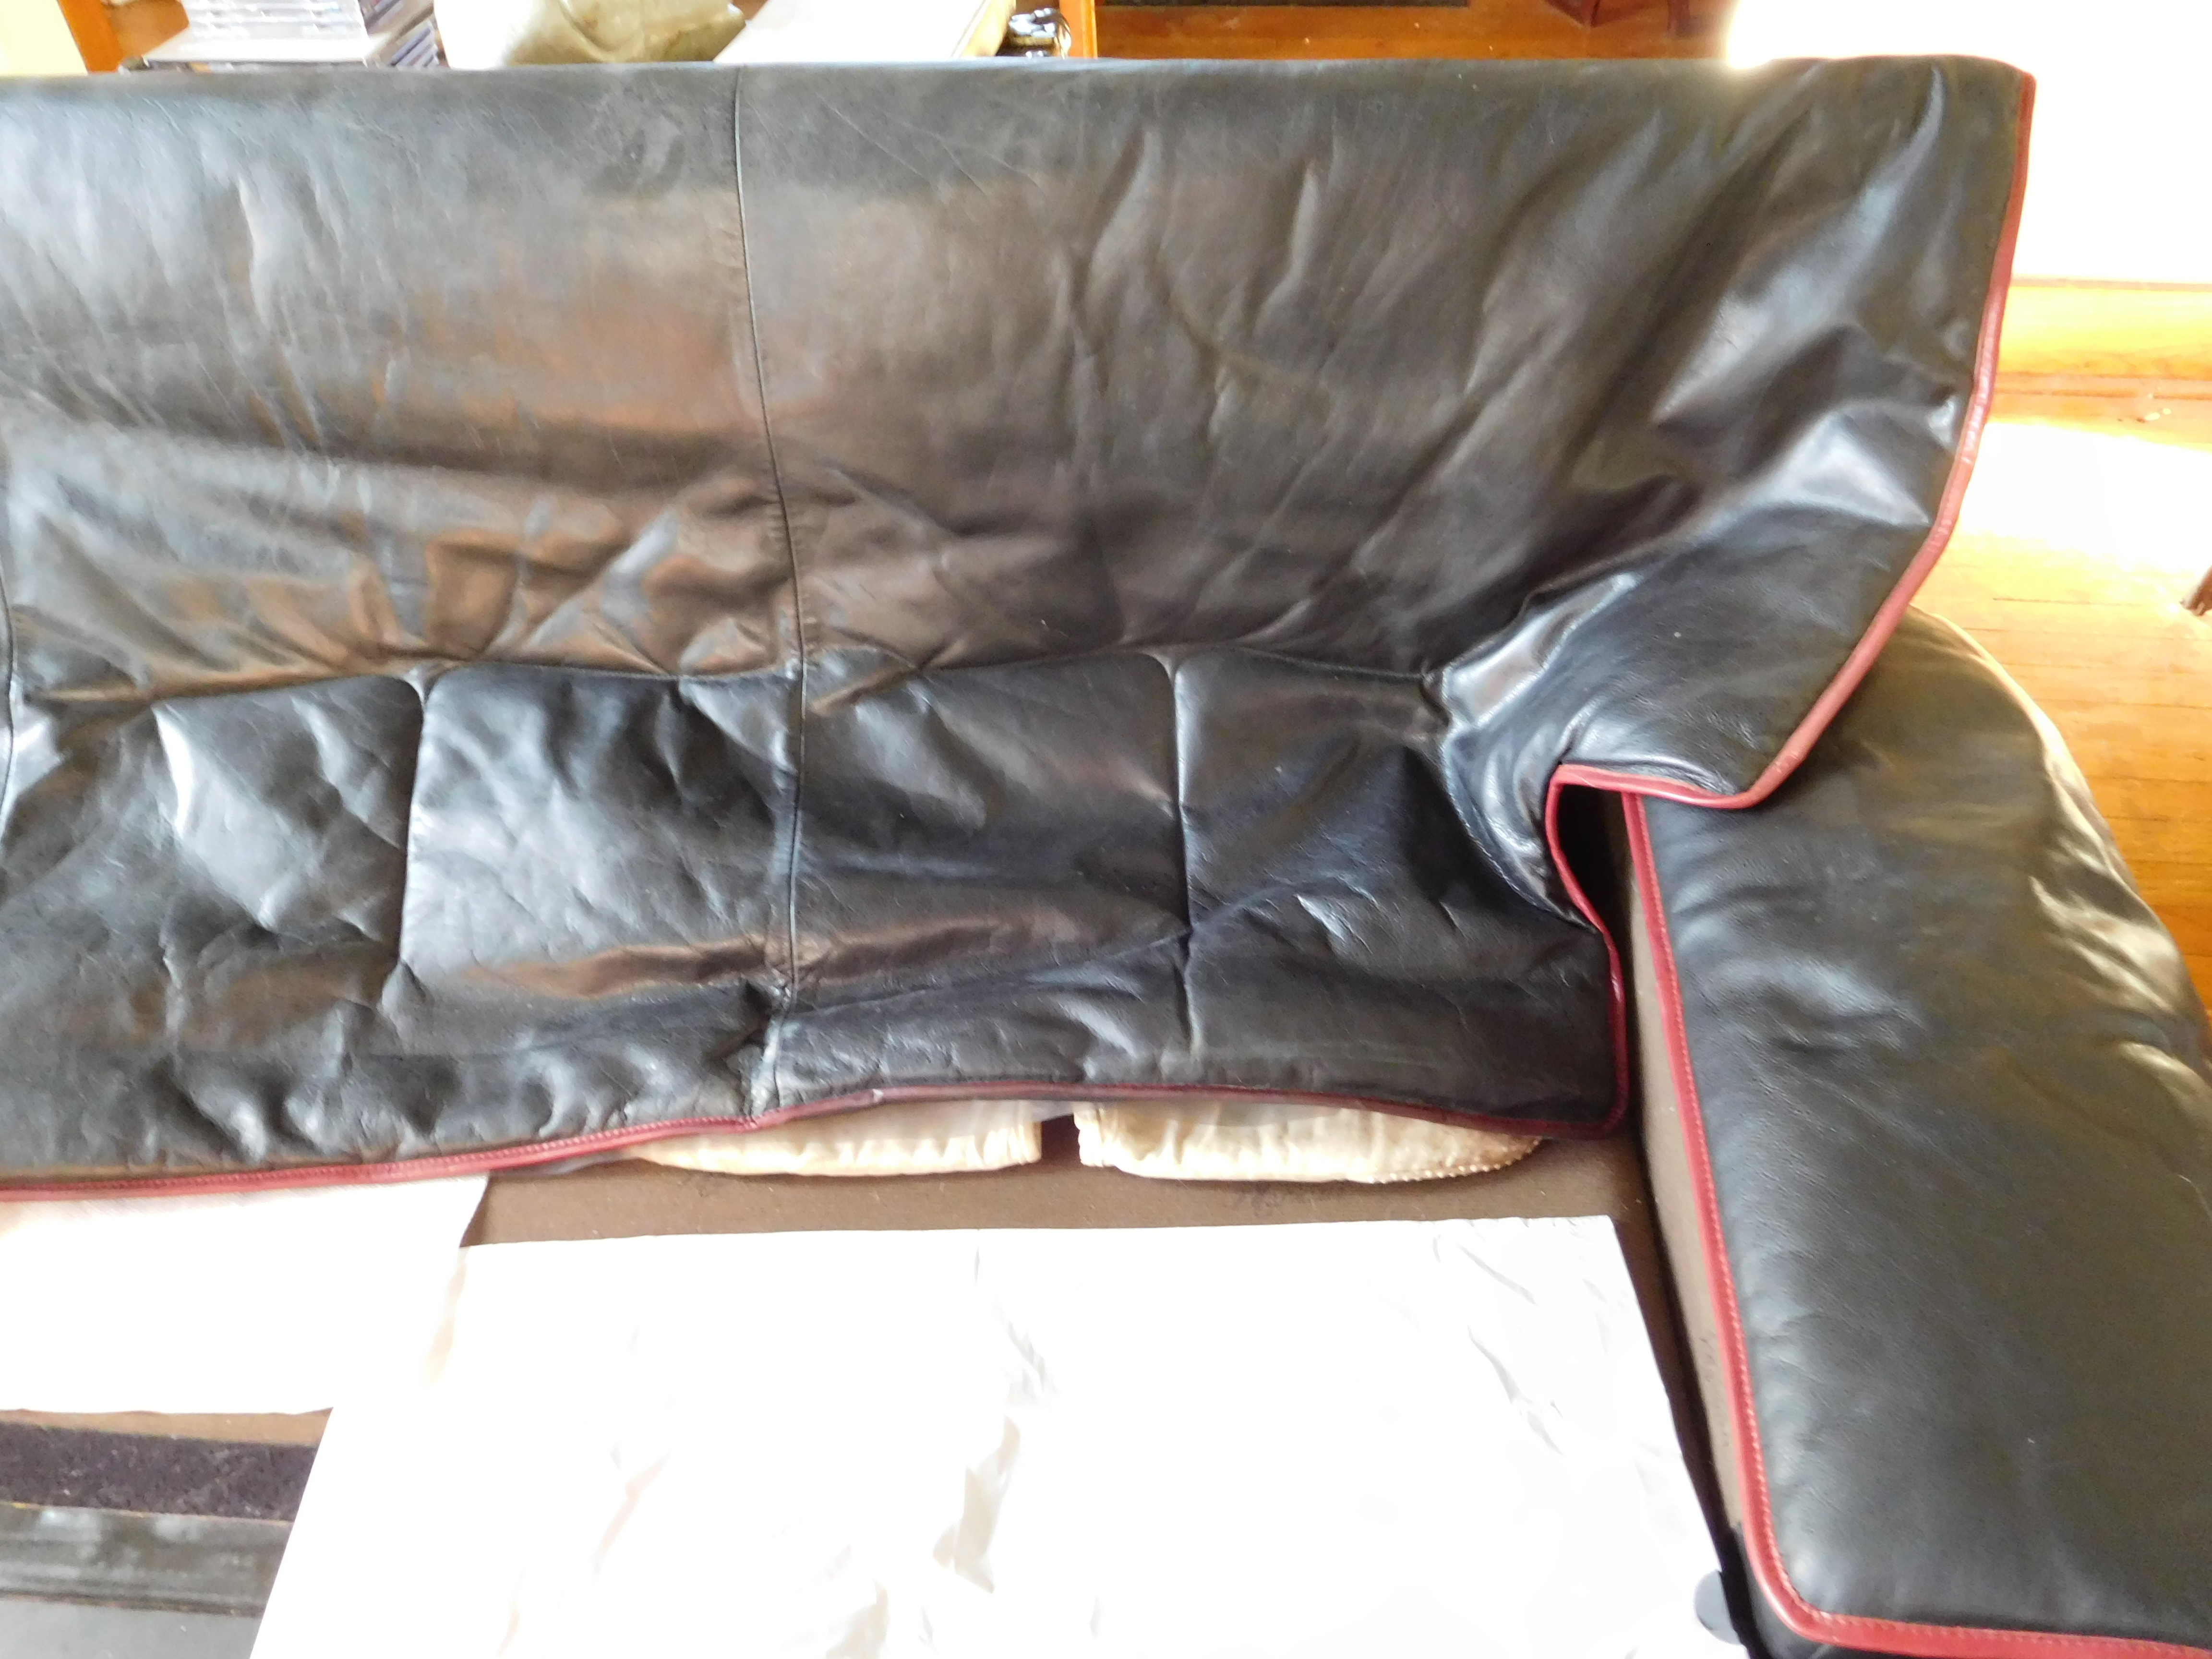 Aniline Leather Couches To Clean Both Of Which Our Cat Urinated